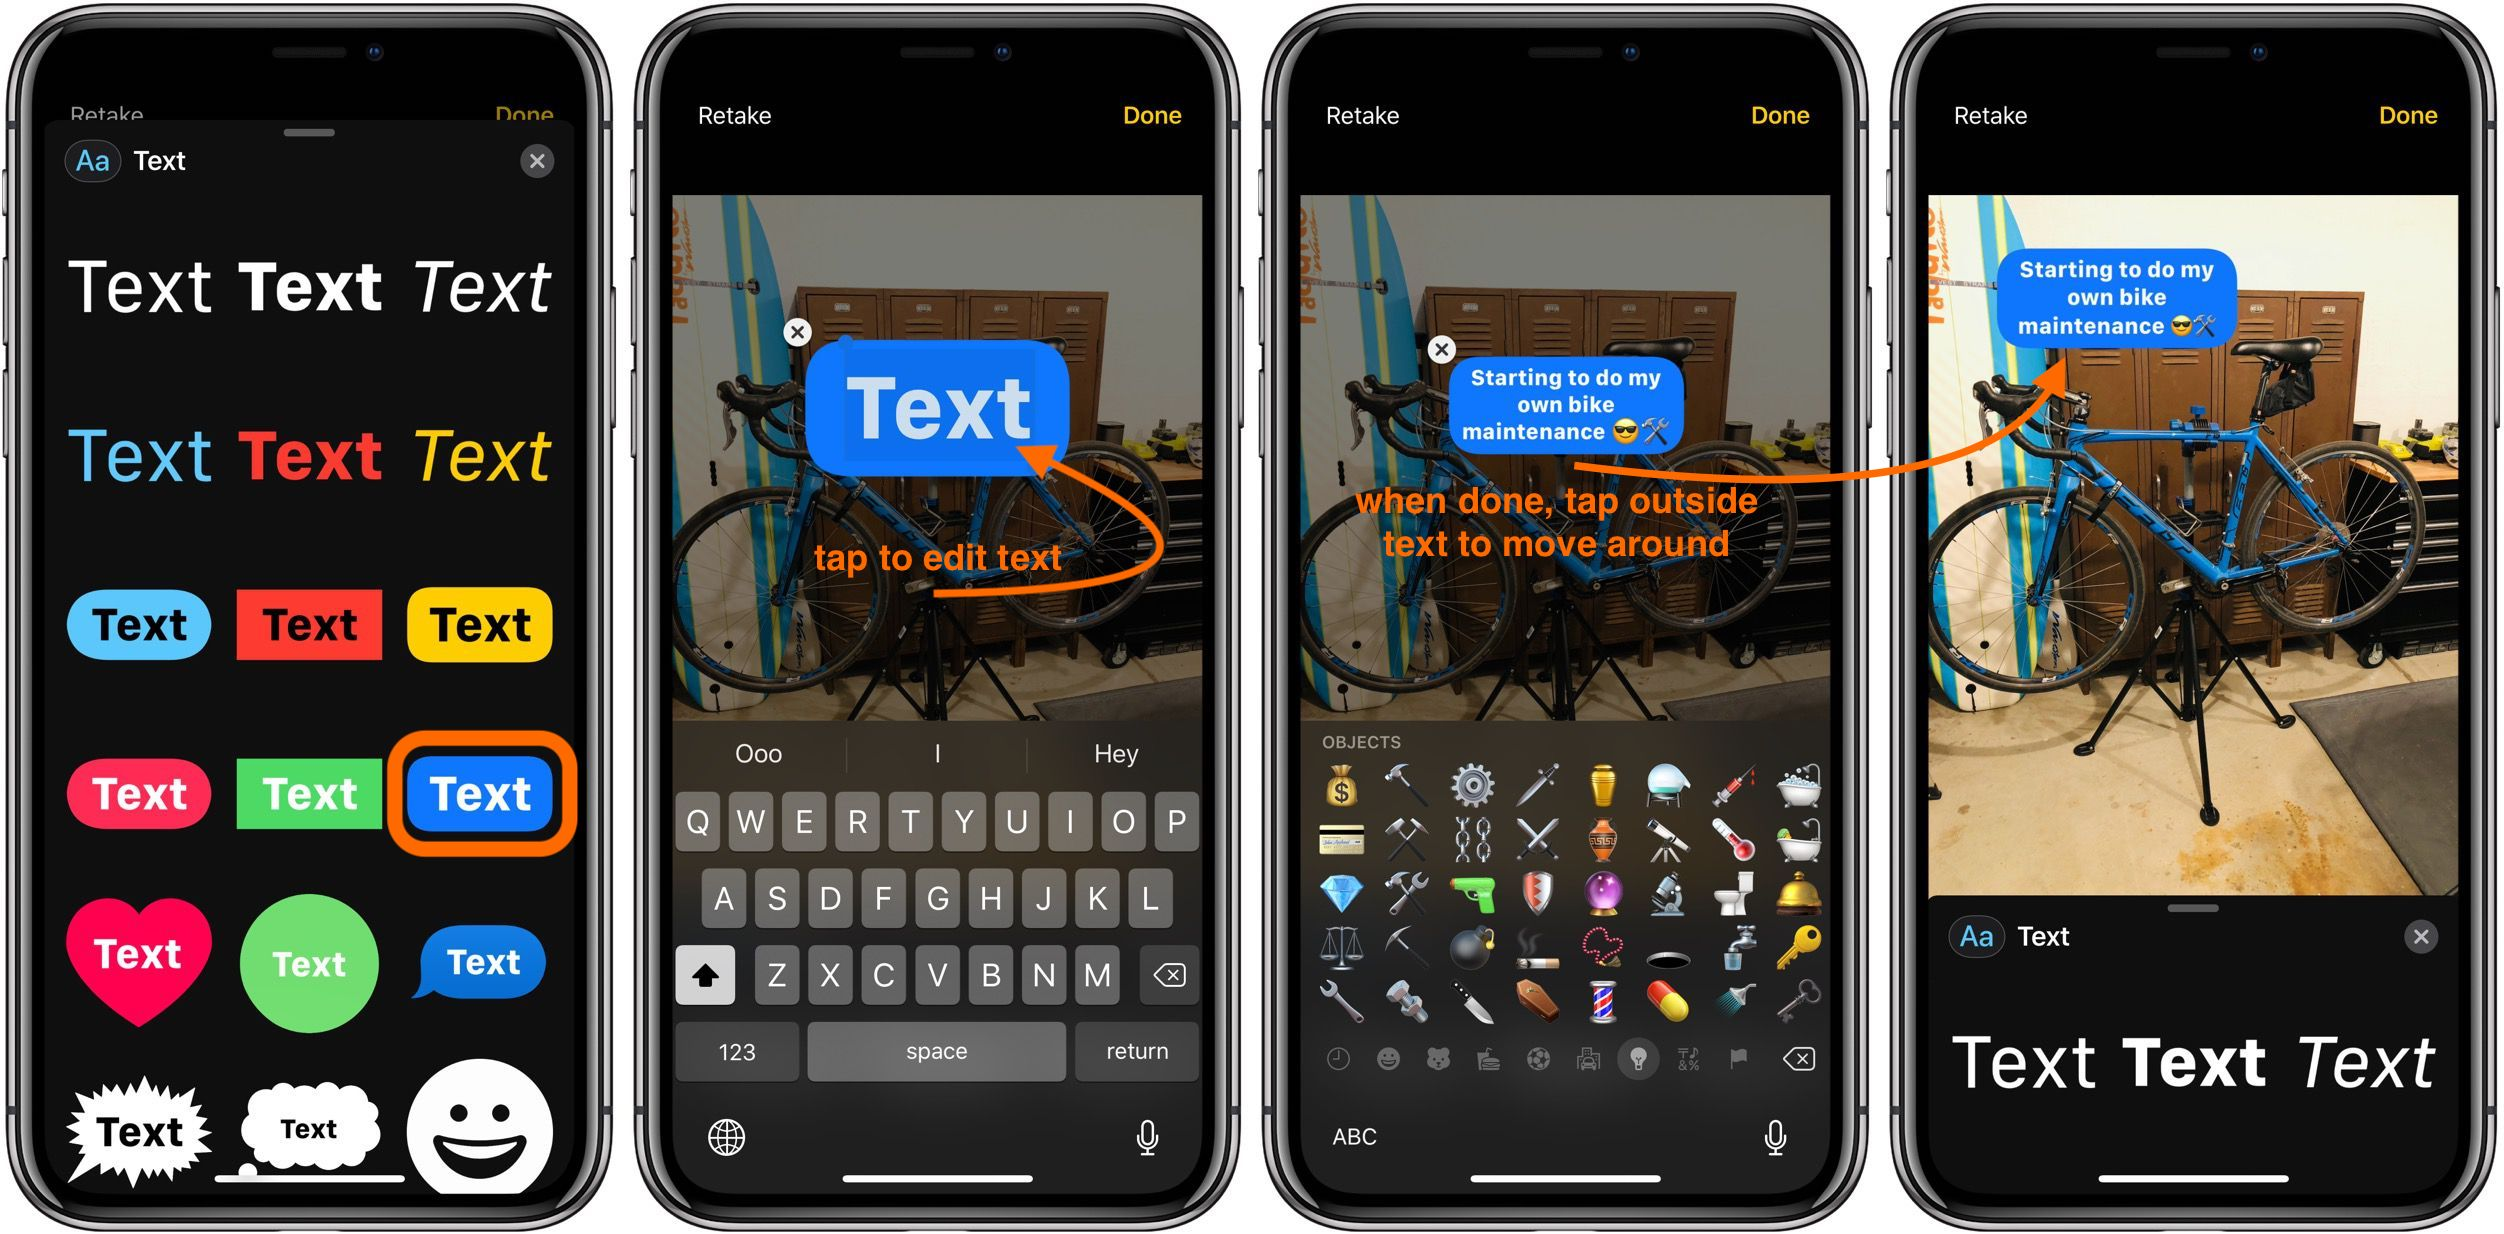 iOS 12: How to markup, add effects, and edit photos and